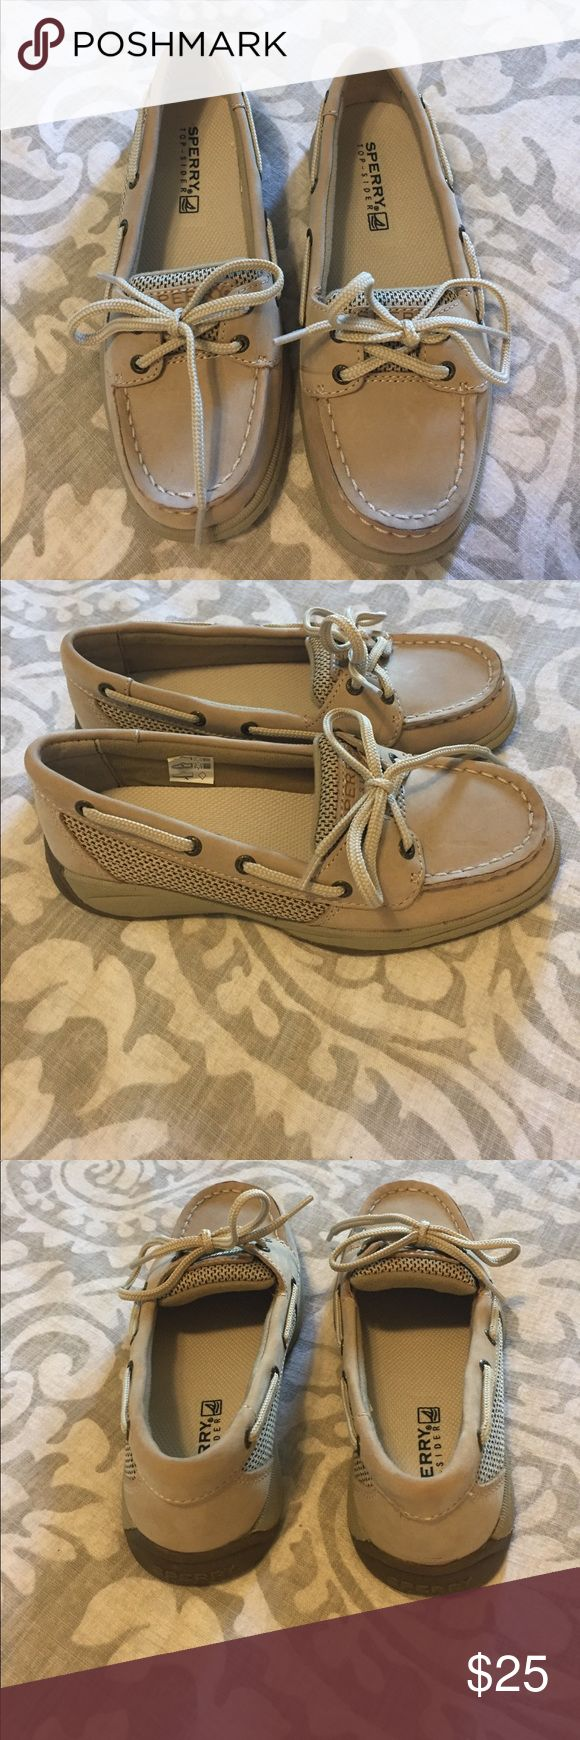 Kids Sperry Top Sider Angelfish Boat Shoe Classic but lower profile boat shoe for girls perfect for back to school! These are New Without box! Non-marking molded out sole. Leather upper. Hand sewn mic construction. Fabric laces. Grommet and lacing detail. Look for all kinds of kids things coming soon! Bundle for savings! Sperry Top-Sider Shoes Moccasins